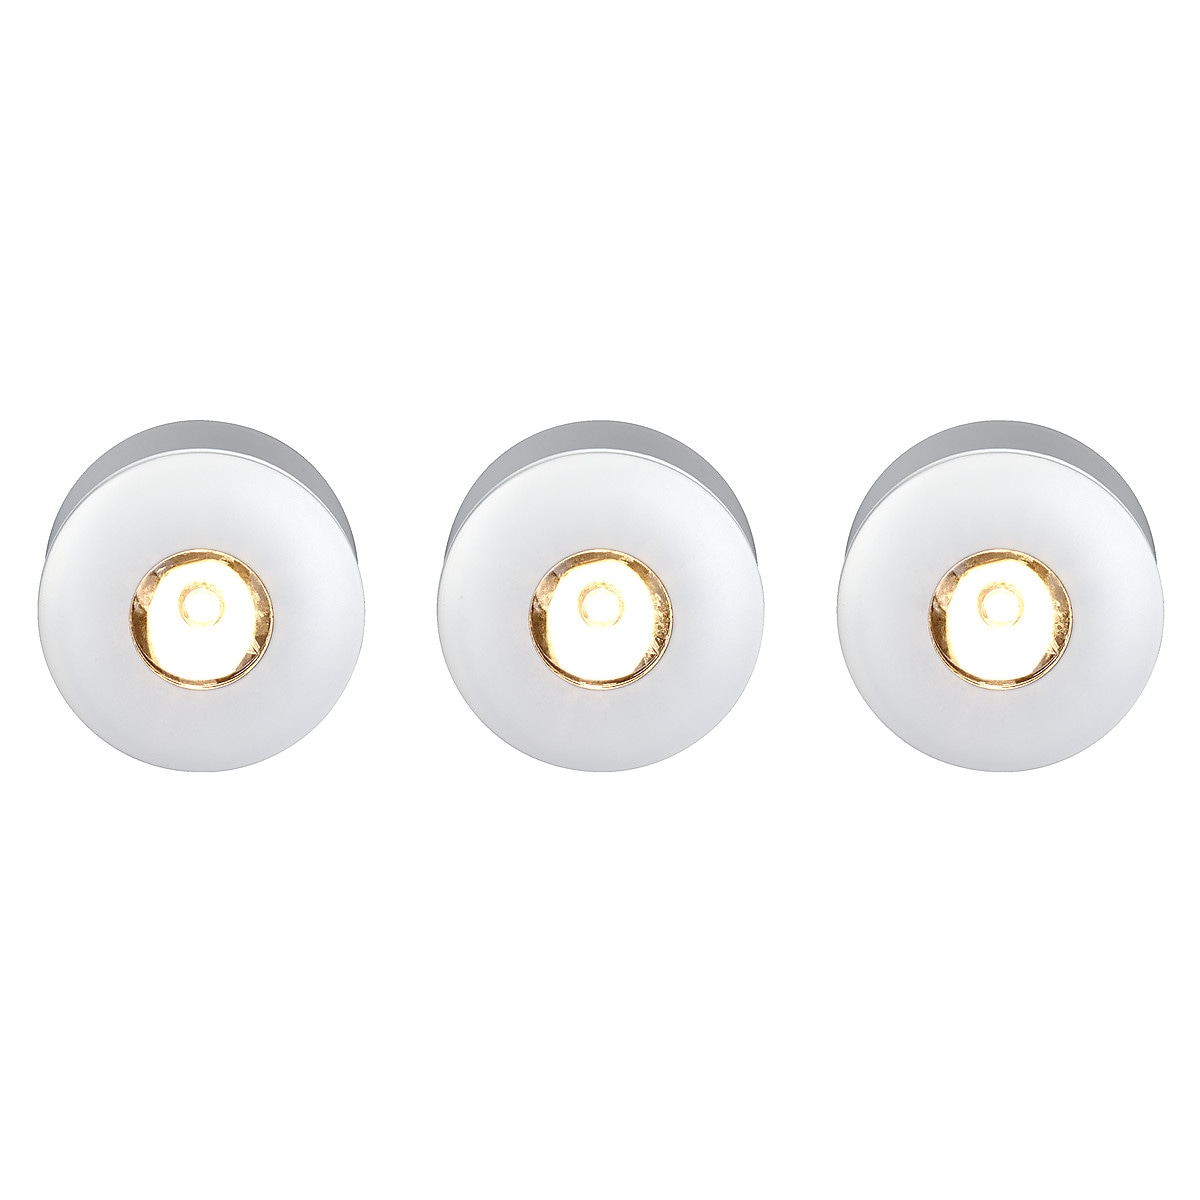 Downlight mini LED 3-pack Northlight